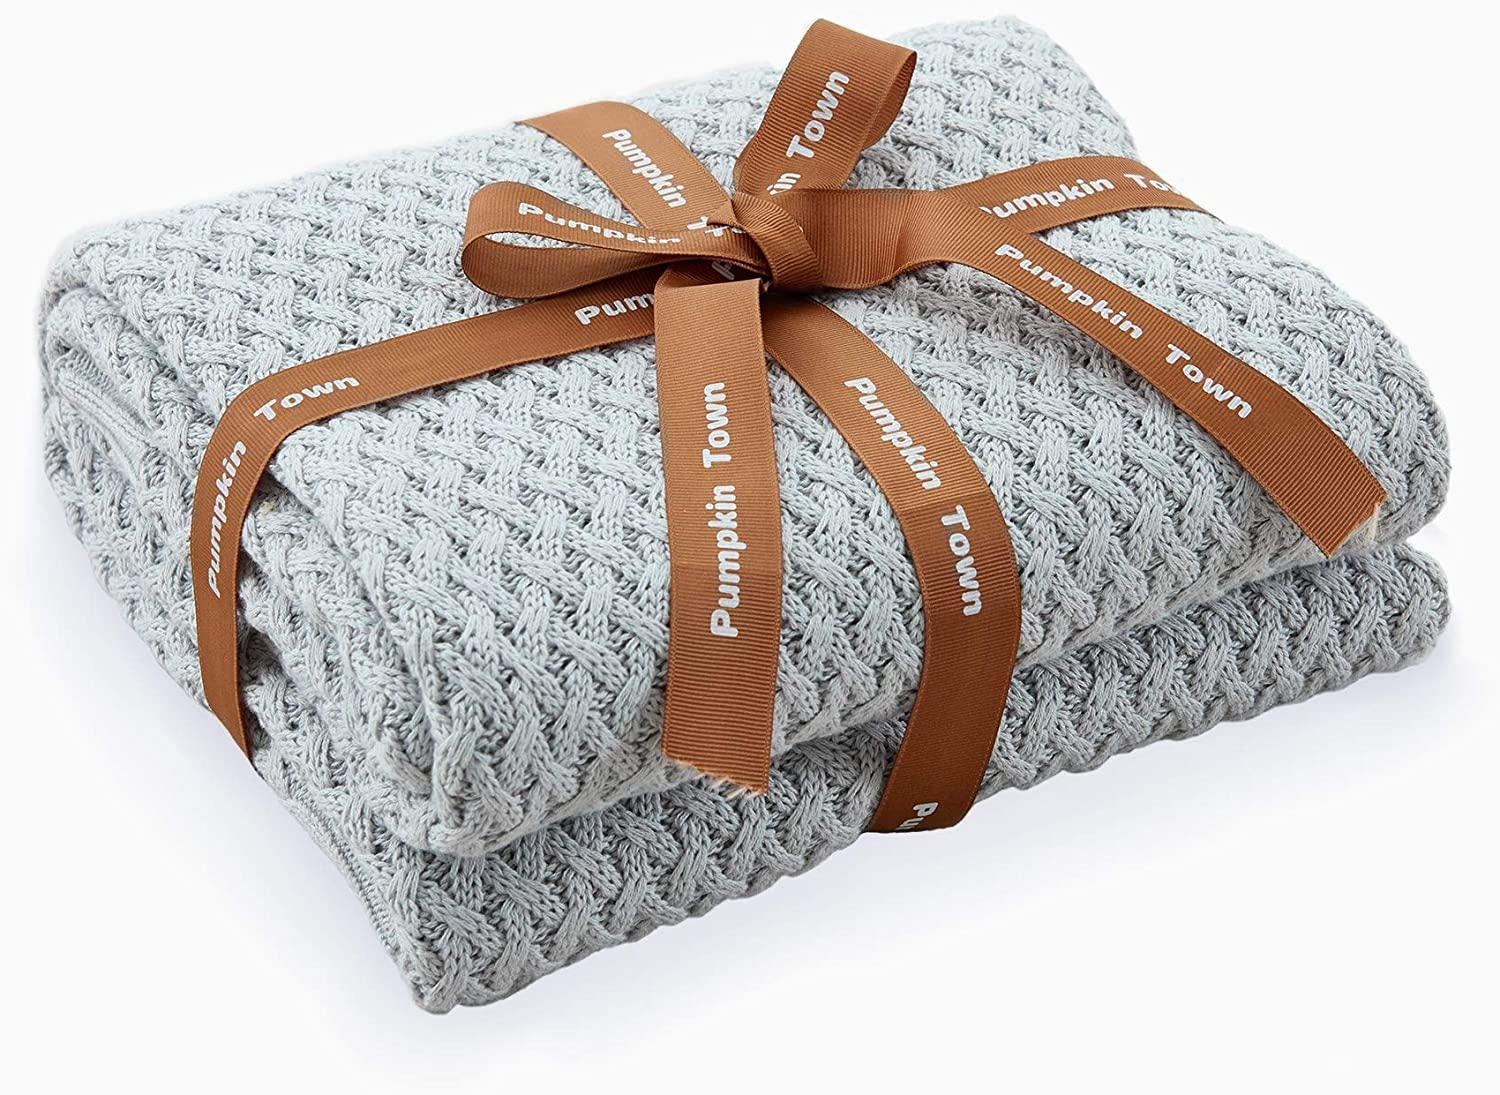 Pumpkin Town Gray 100% Cotton Cable Knit Spring Throw Blanket for Soft Sofa, Chair, Couch, Picnic, Camping, Beach, Home Decorative Knitted Blanket, 50